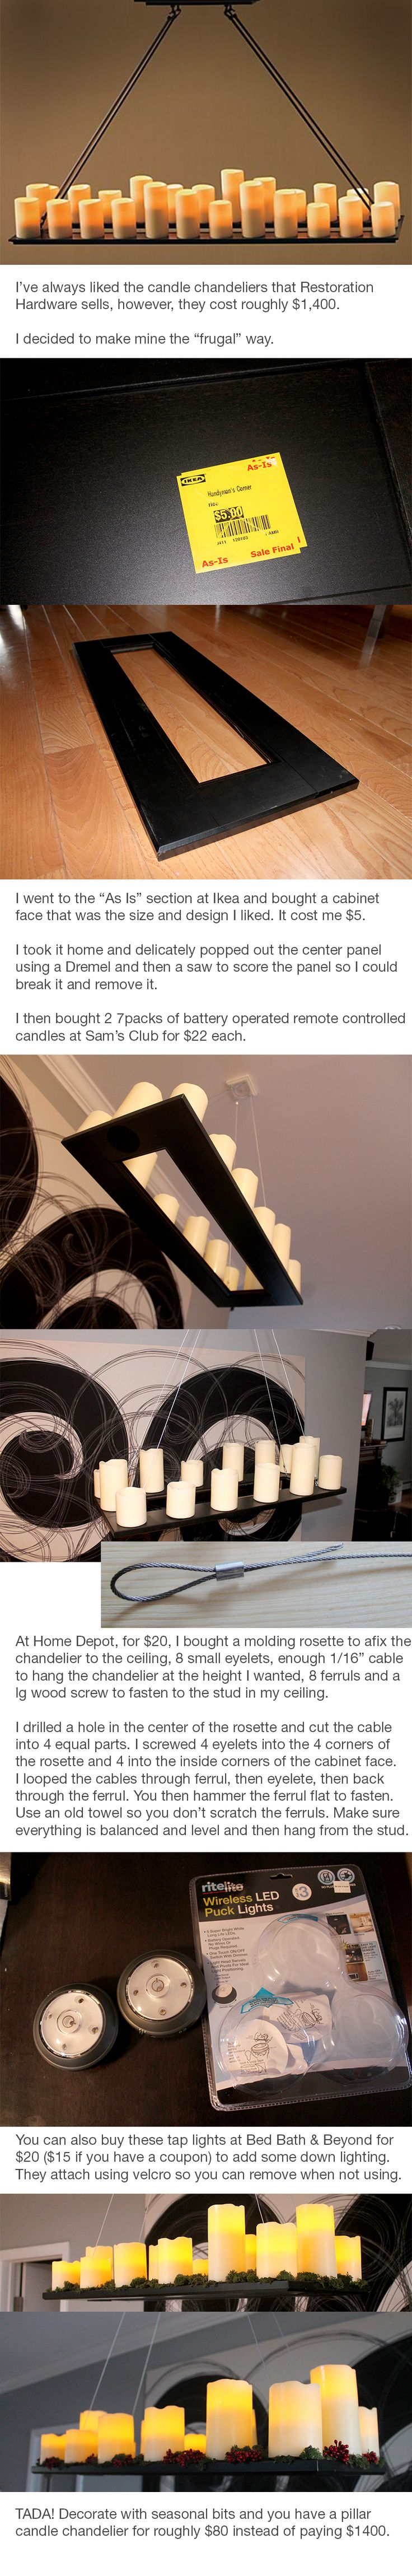 You can make this cool pillar candle chandelier for $80 instead of buying one from Restoration Hardware for $1400